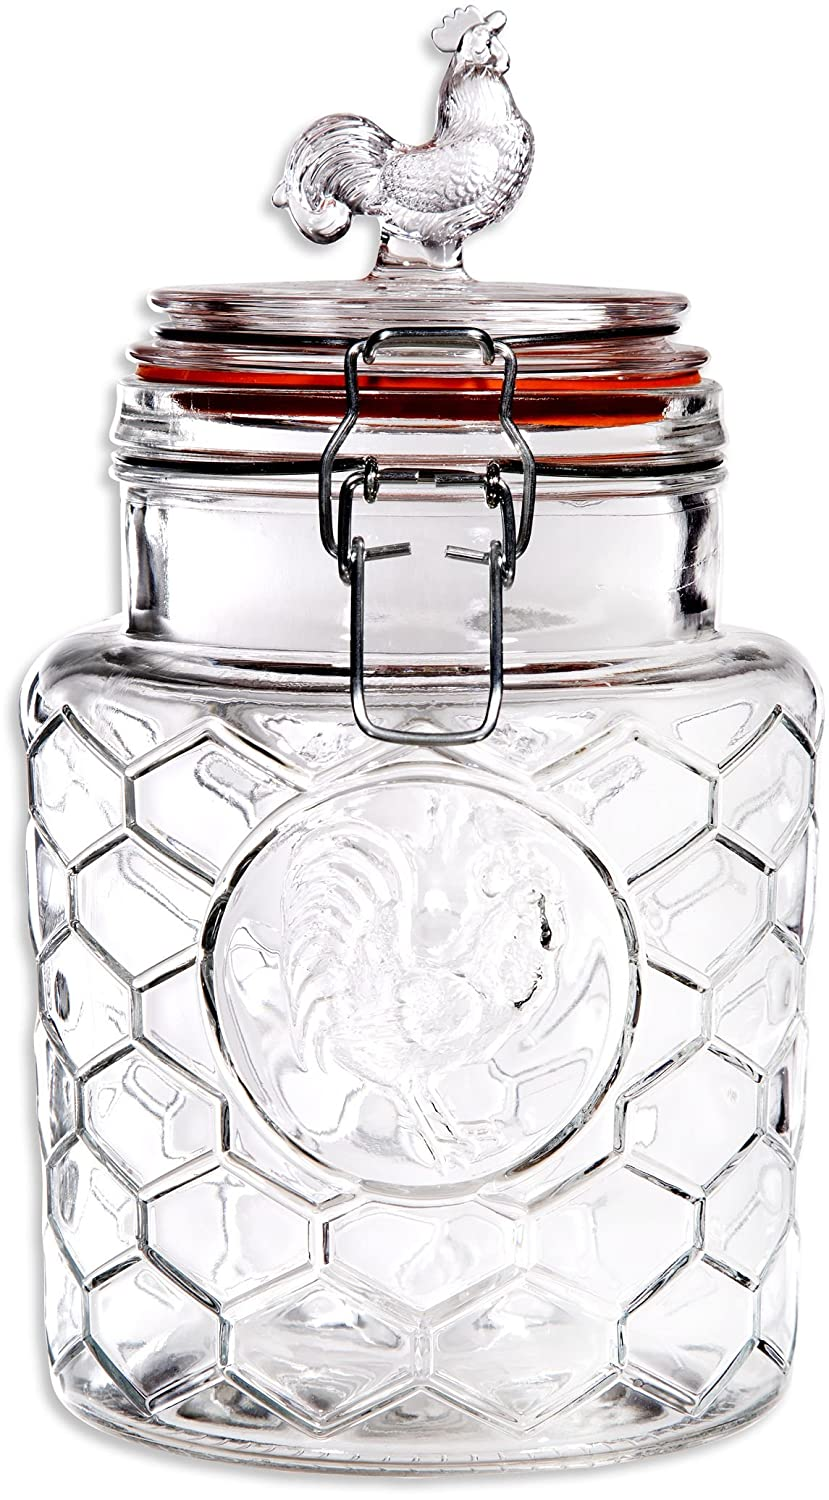 amazon com palais rooster high quality clear glass canister amazon com palais rooster high quality clear glass canister with bail trigger locking lids 24 oz 7